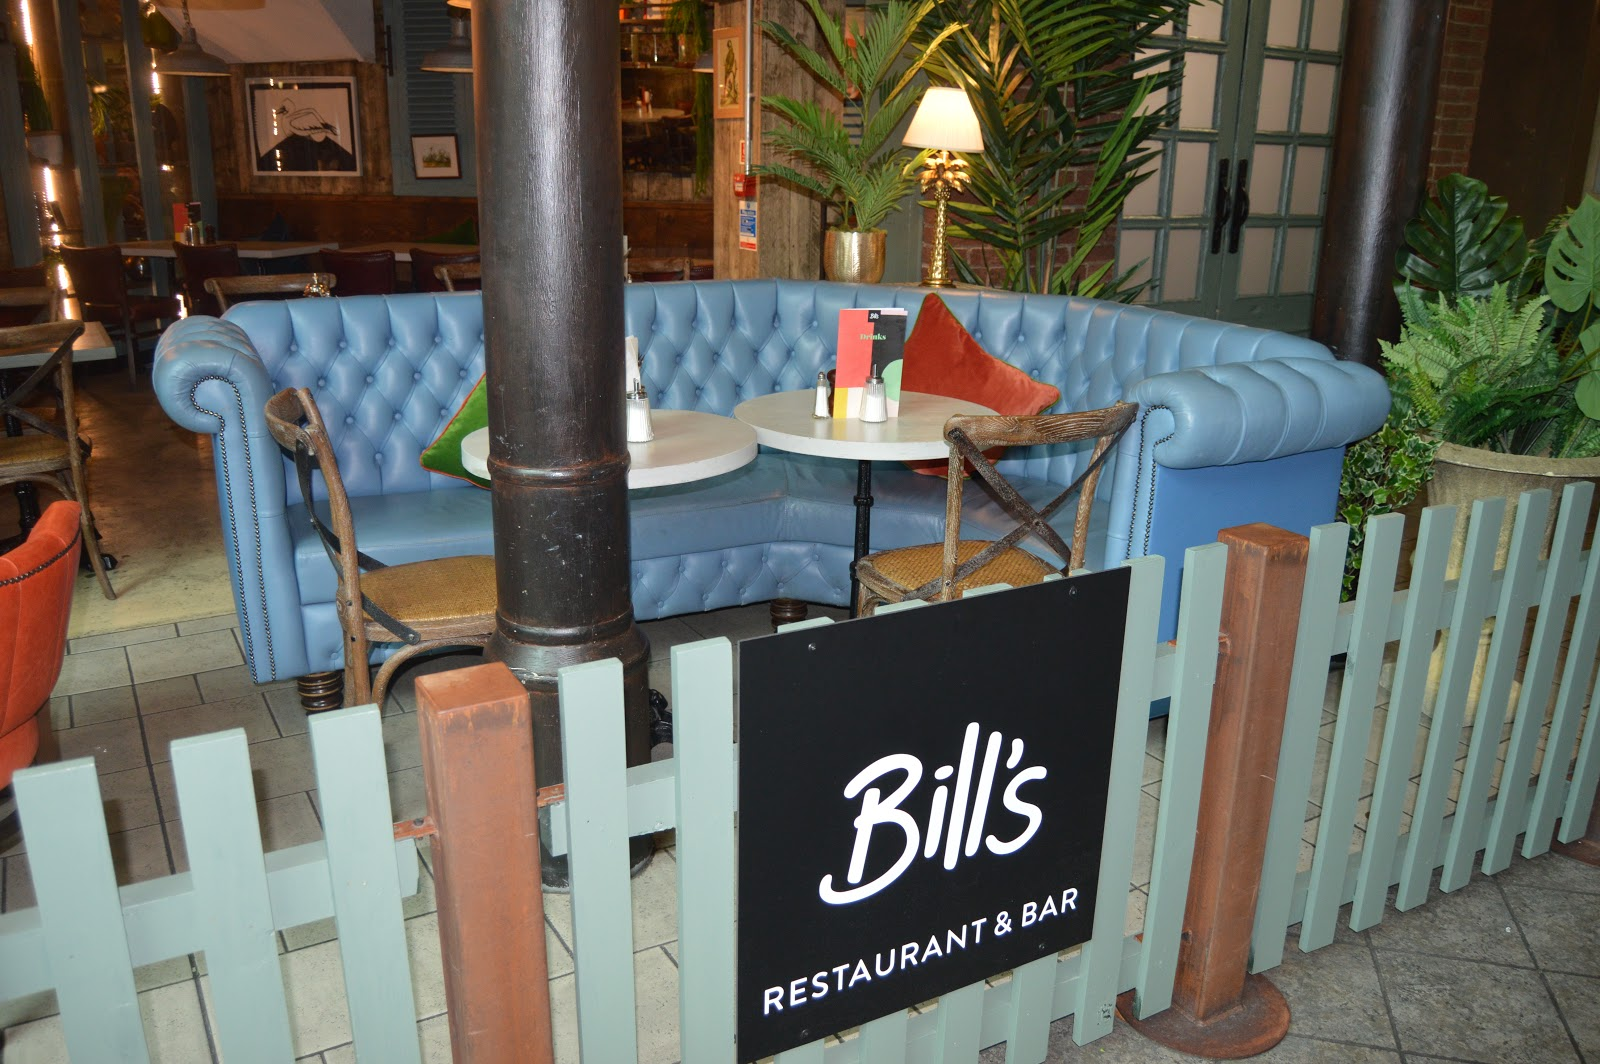 Outside Bills Restaurant